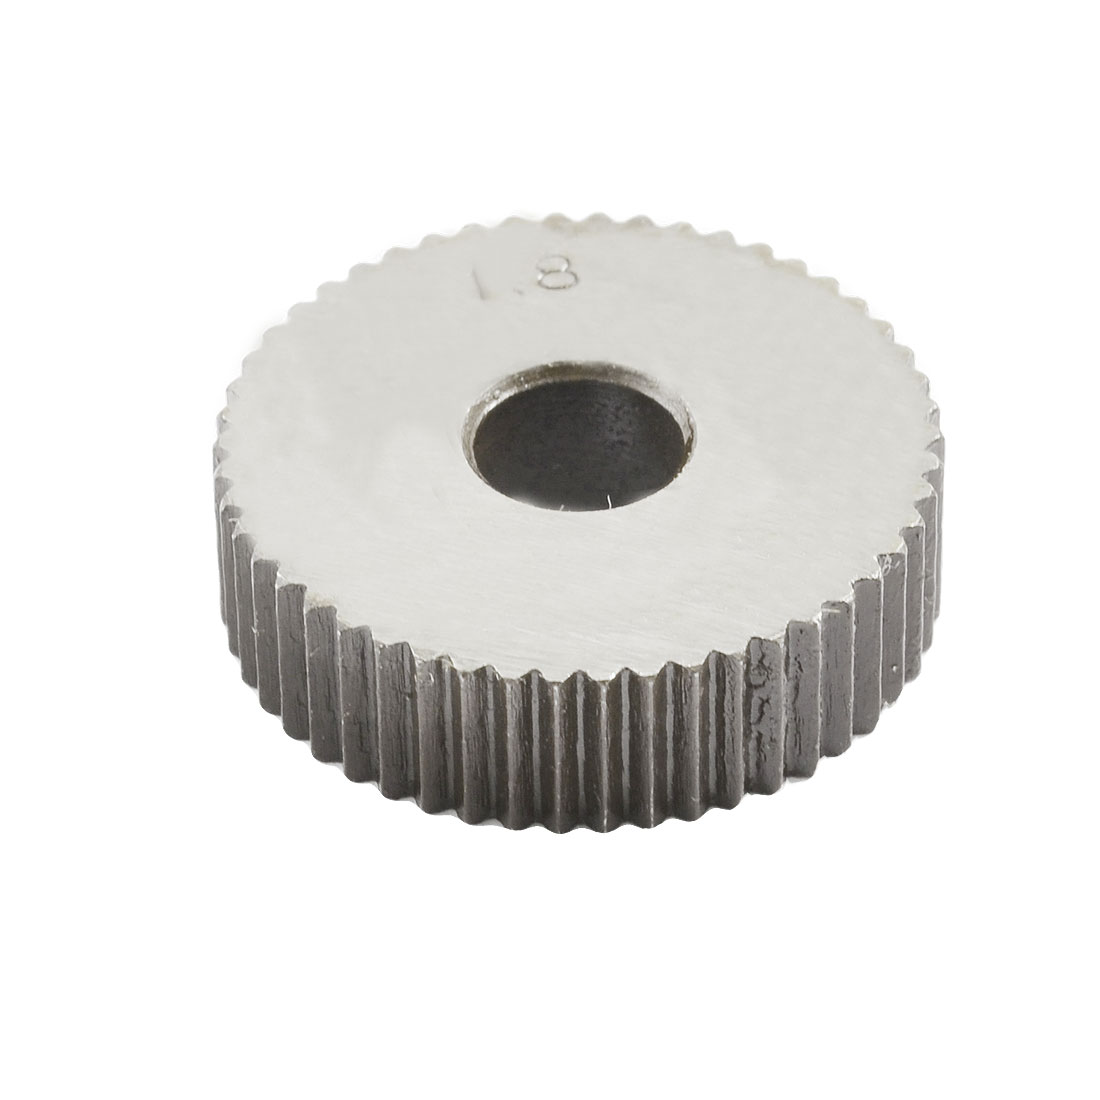 HSS 1.8mm Pitch Straight Coarse Knurl Wheel Knurling Roller